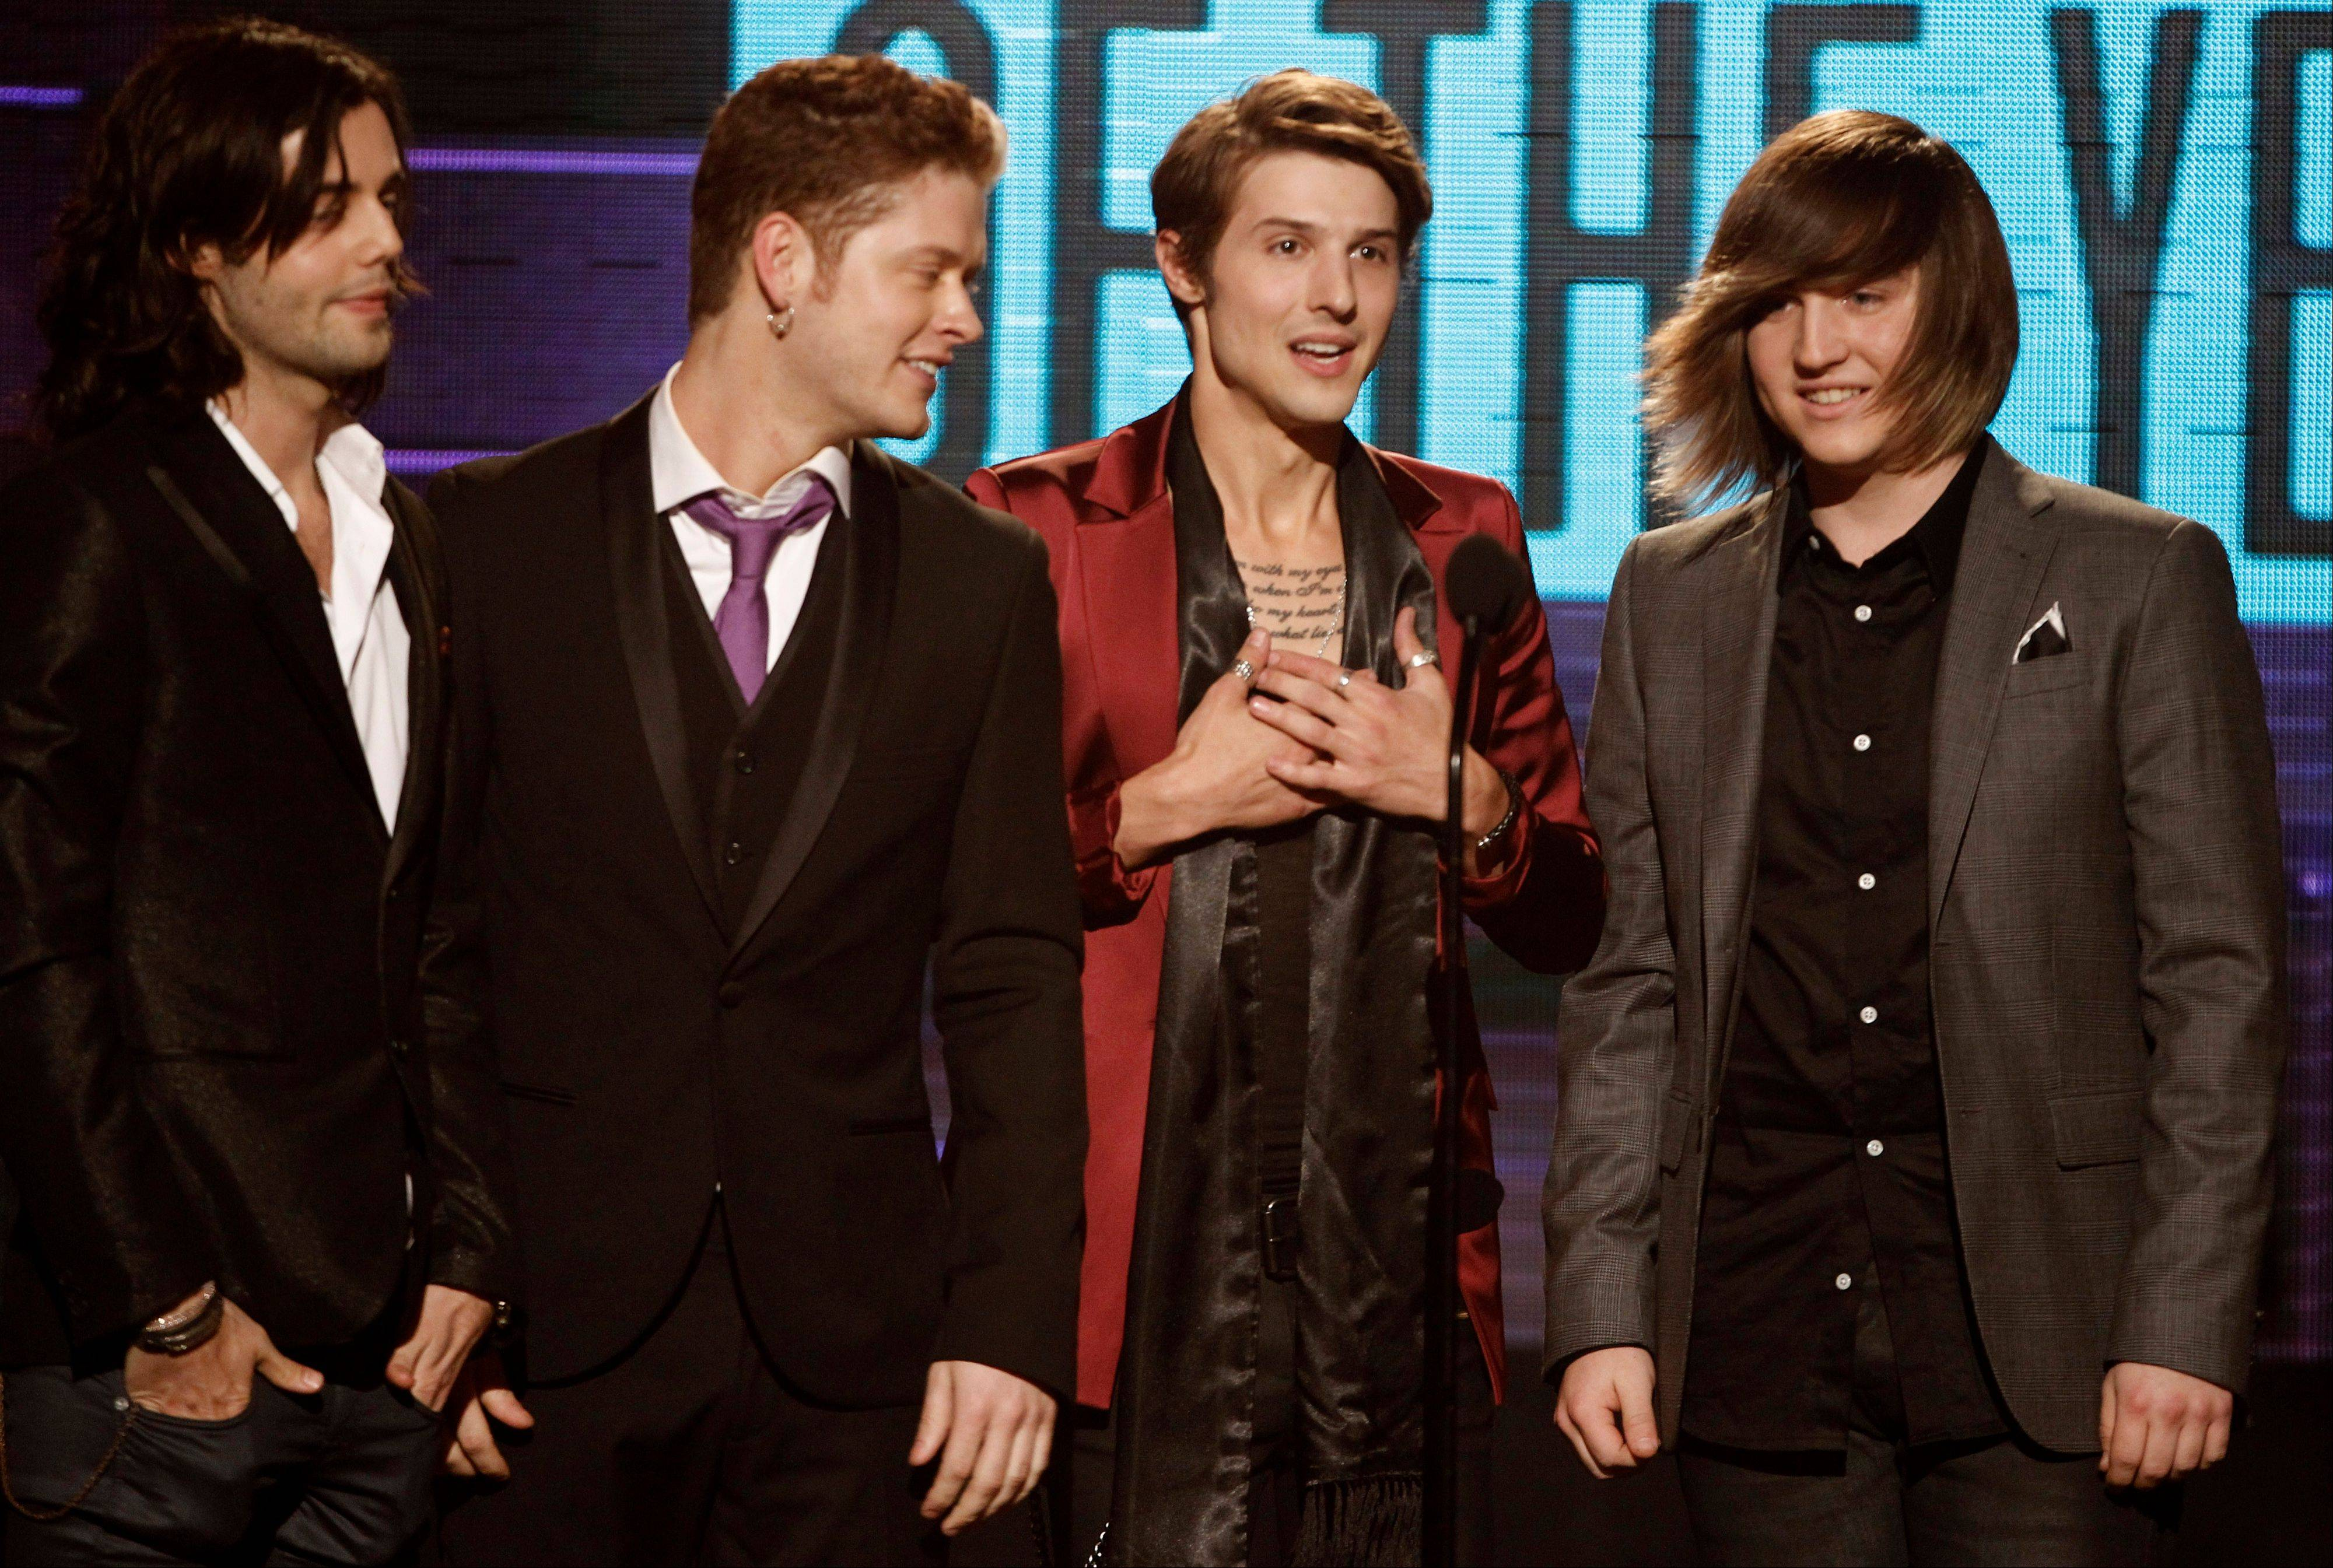 The band Hot Chelle Rae, from left, Ian Keaggy, Nash Overstreet, Ryan Follese, and Jamie Follese, accept the Sprint new artist of the year award at the 39th Annual American Music Awards on Sunday, Nov. 20, 2011 in Los Angeles.